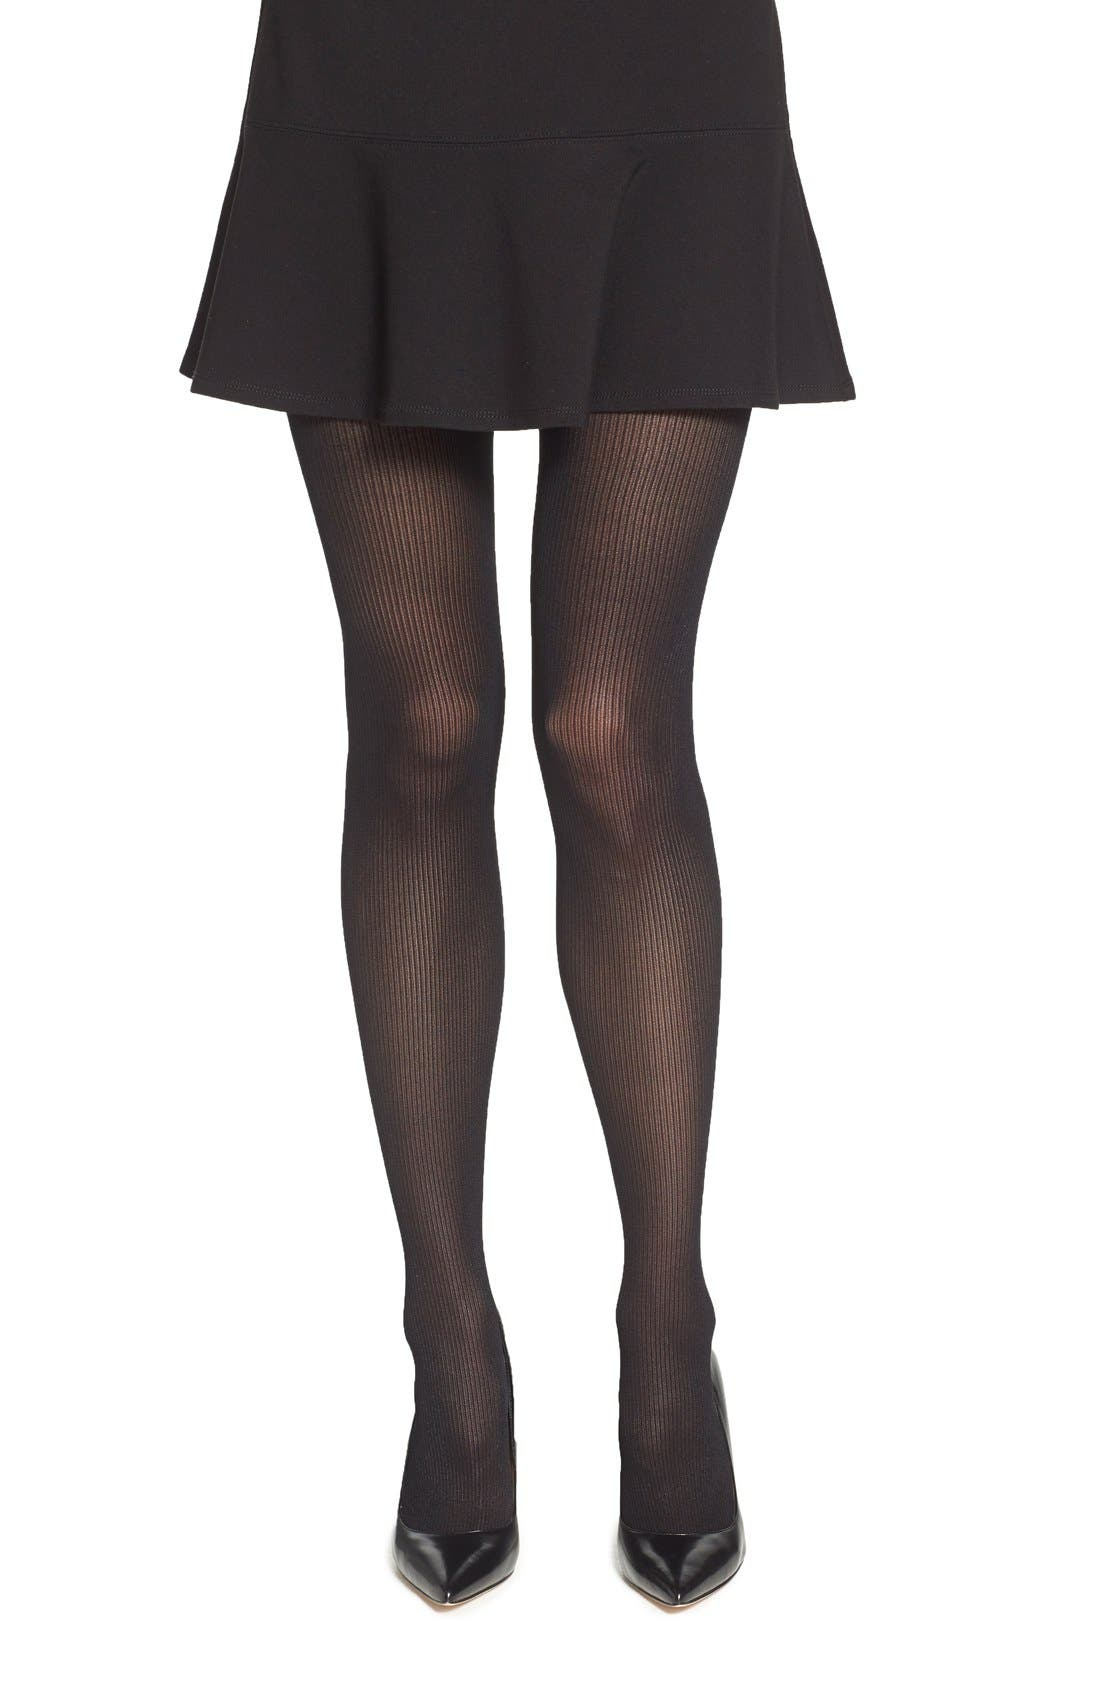 Alternate Image 1 Selected - Chelsea28 Ribbed Tights